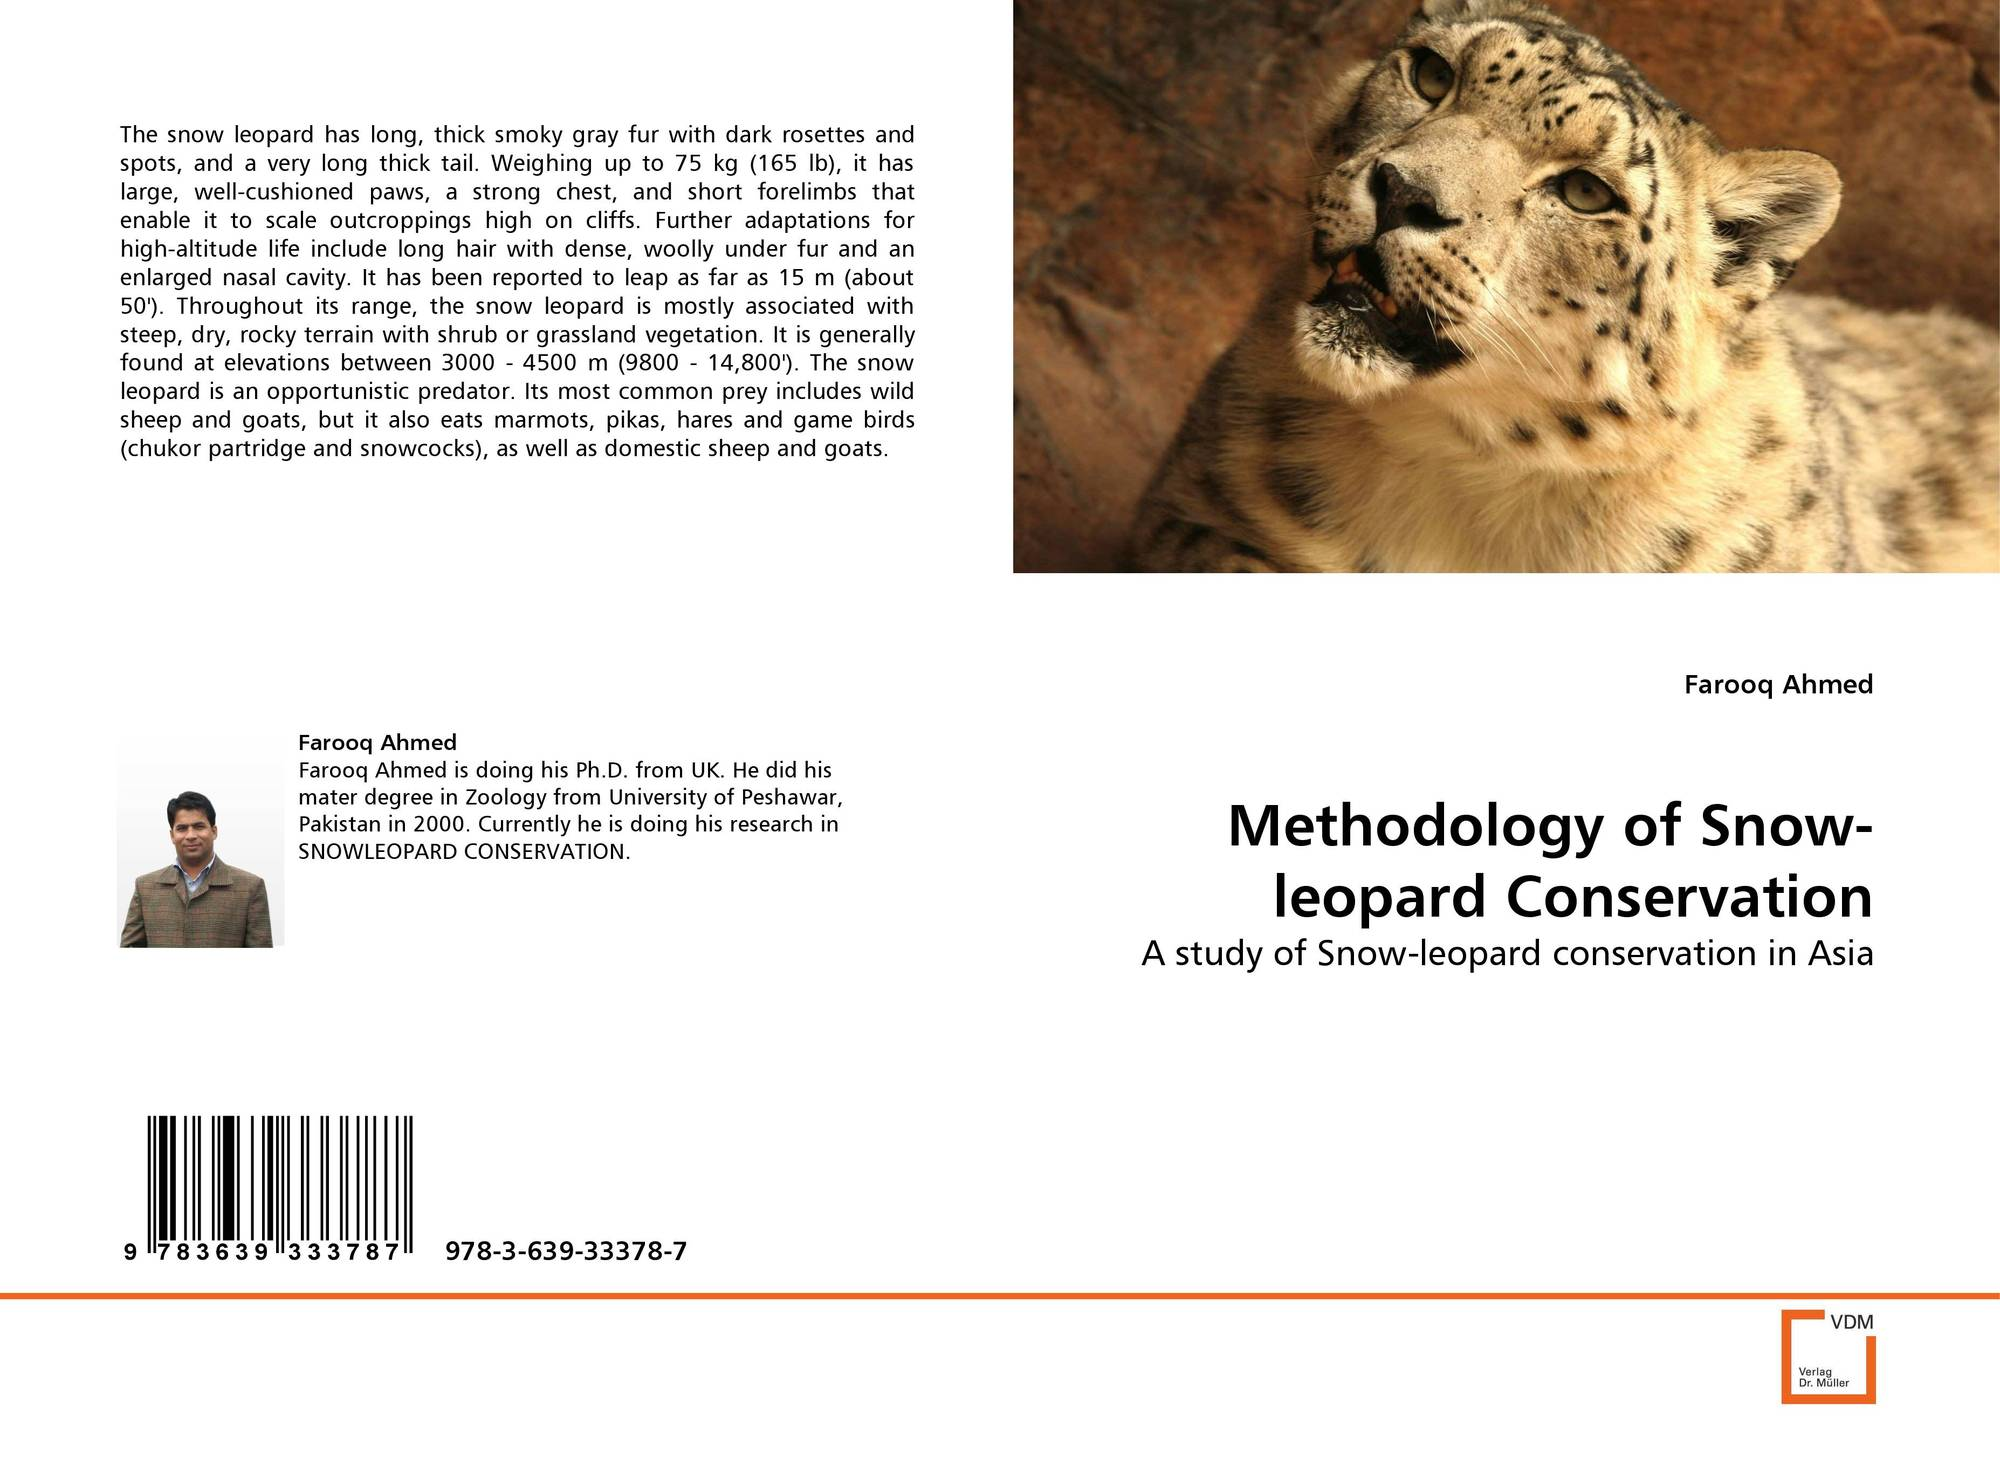 conservation of the snow leopard essay Studying the snow leopard: reconceptualizing conservation across the china– india border  map of snow leopard range across the sino-indian border map   in a recent essay by bhatnagar and mishra, they began by.